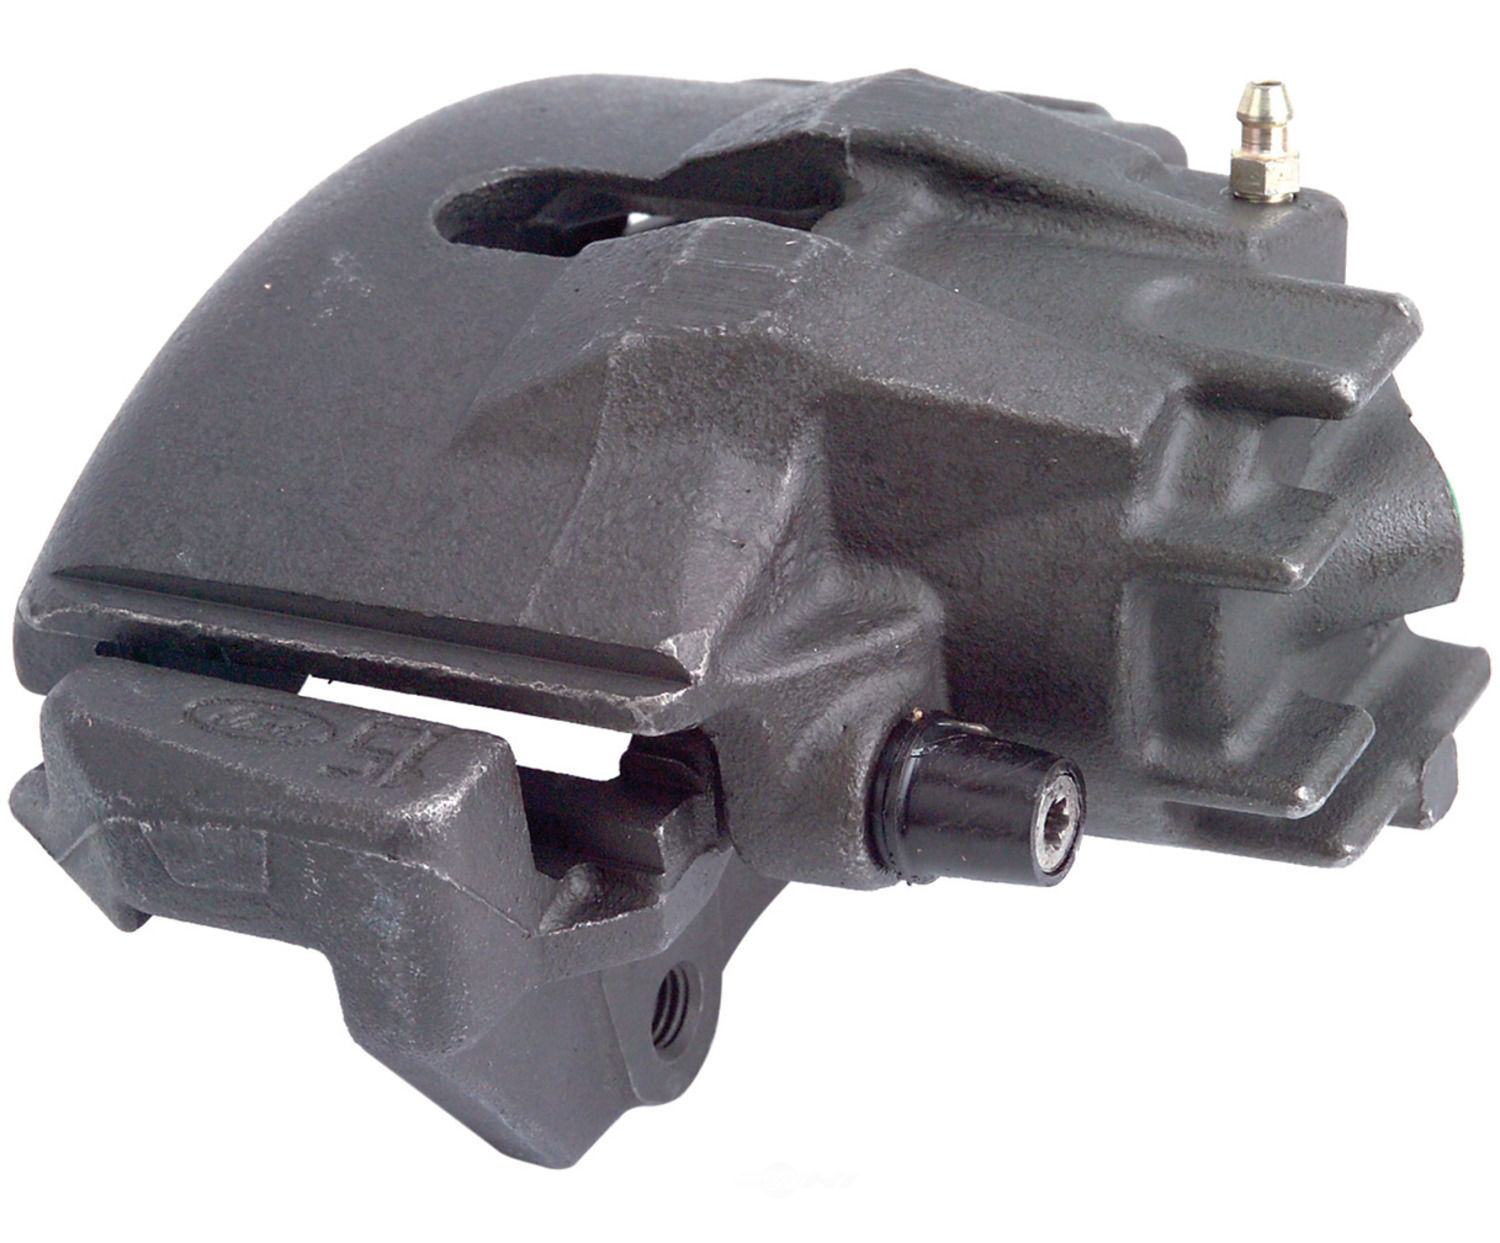 CARDONE/A-1 CARDONE - Reman Friction Choice Caliper w/Bracket (Front Right) - A1C 18-B4623B